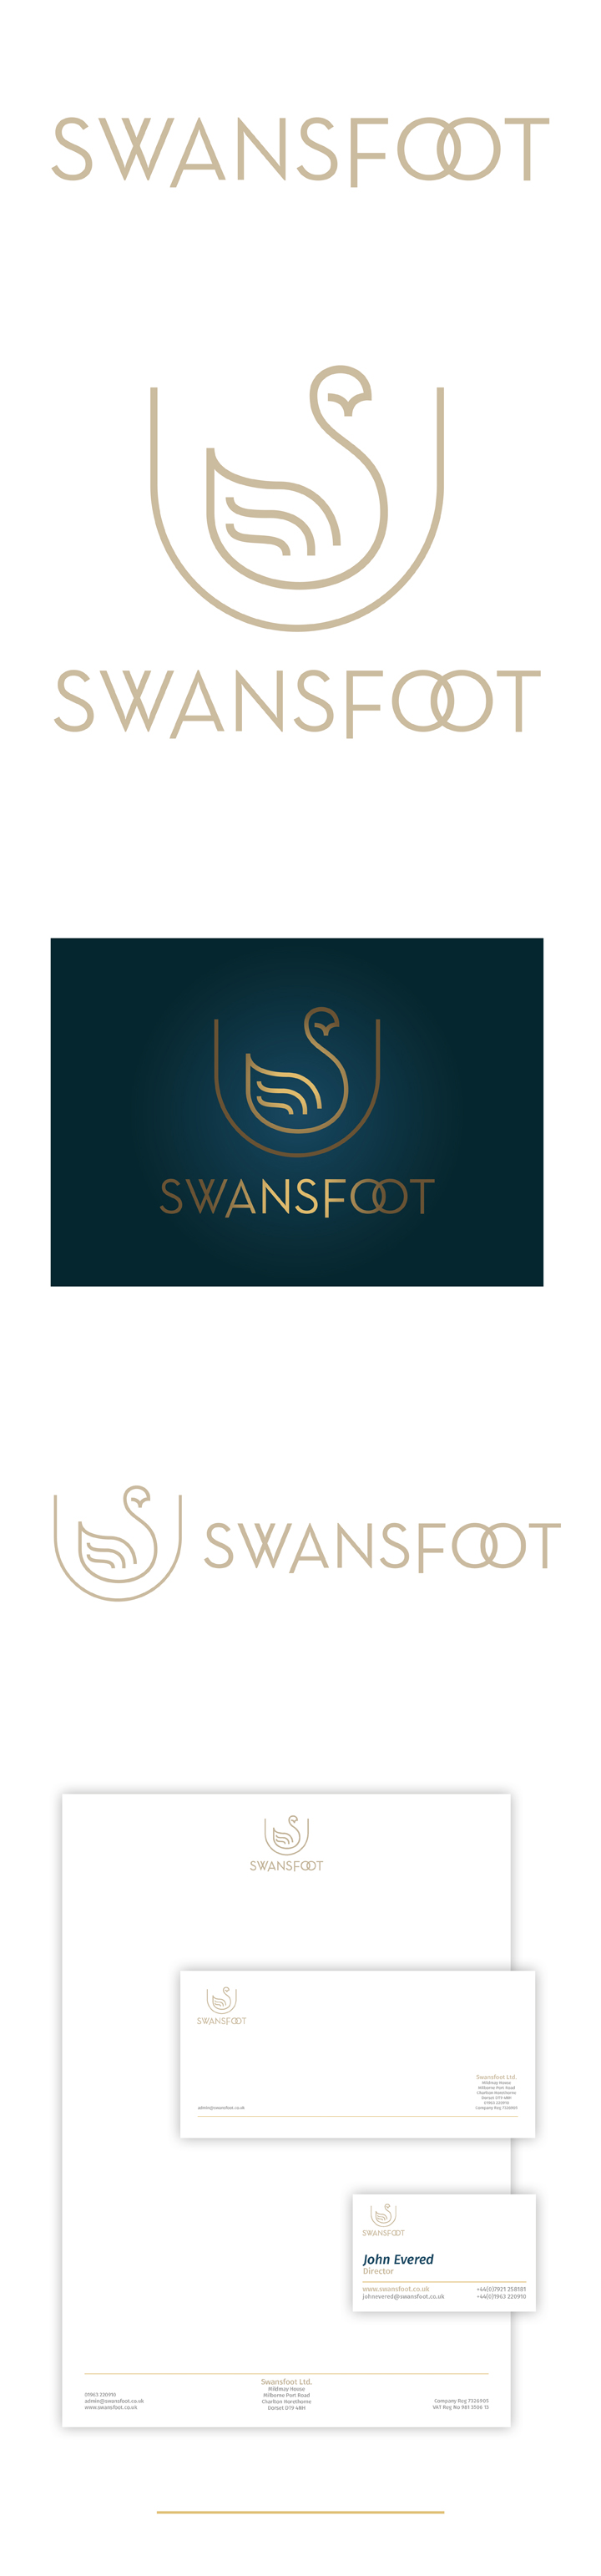 Swansfoot Brand - Theory Unit Graphic Design and Website Development